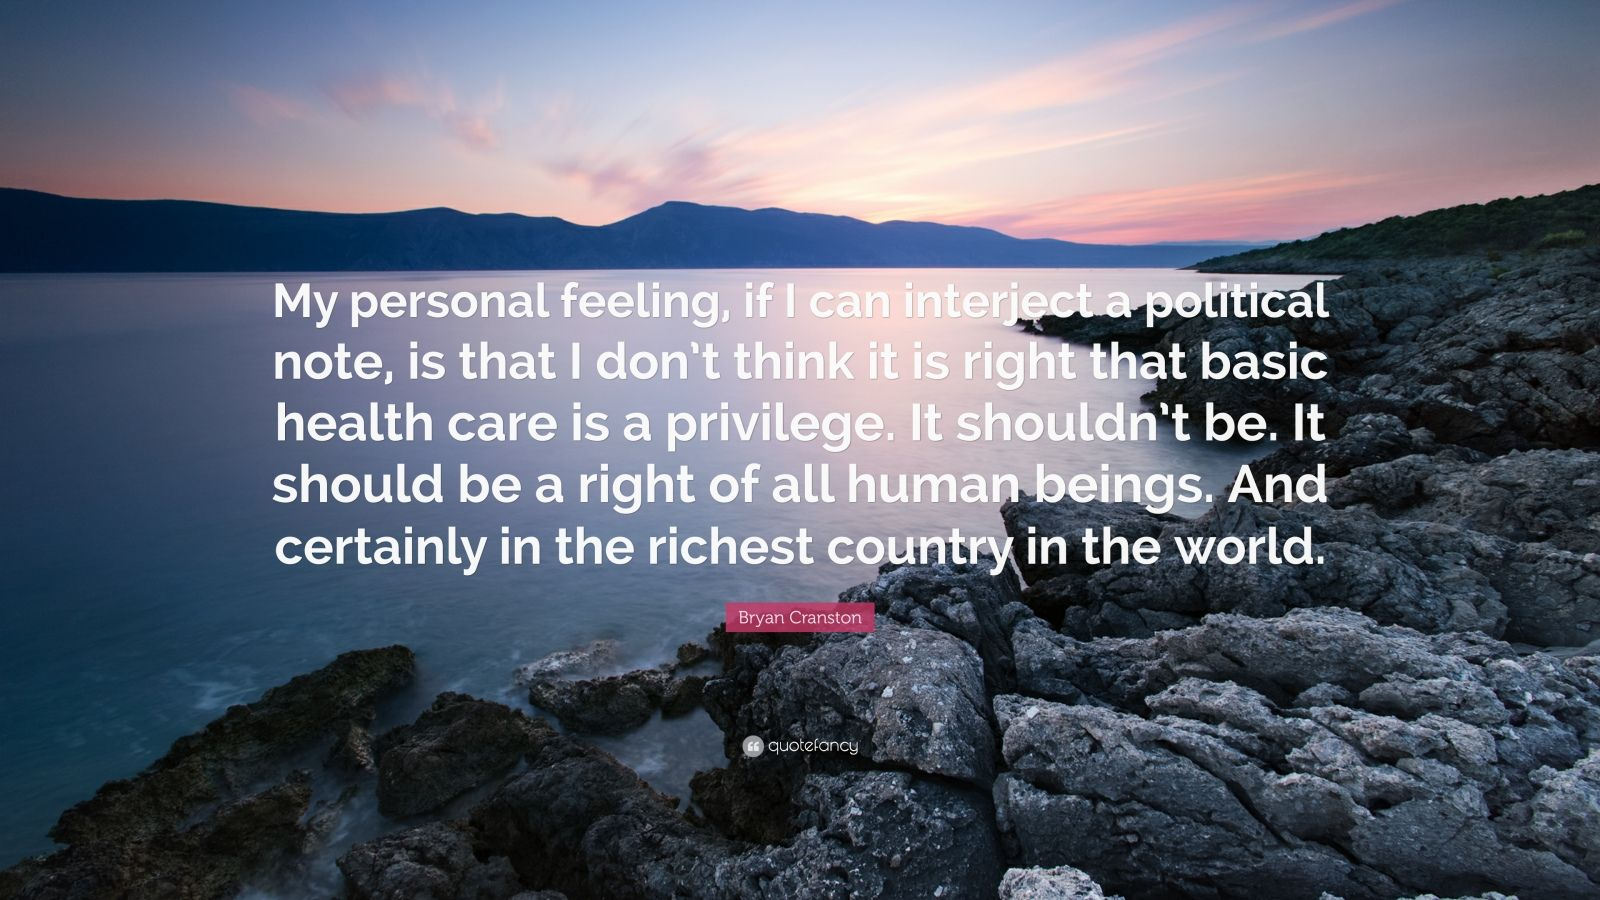 """Bryan Cranston Quote: """"My personal feeling, if I can interject a political note, is that I don't think it is right that basic health care is a privilege. It shouldn't be. It should be a right of all human beings. And certainly in the richest country in the world."""""""